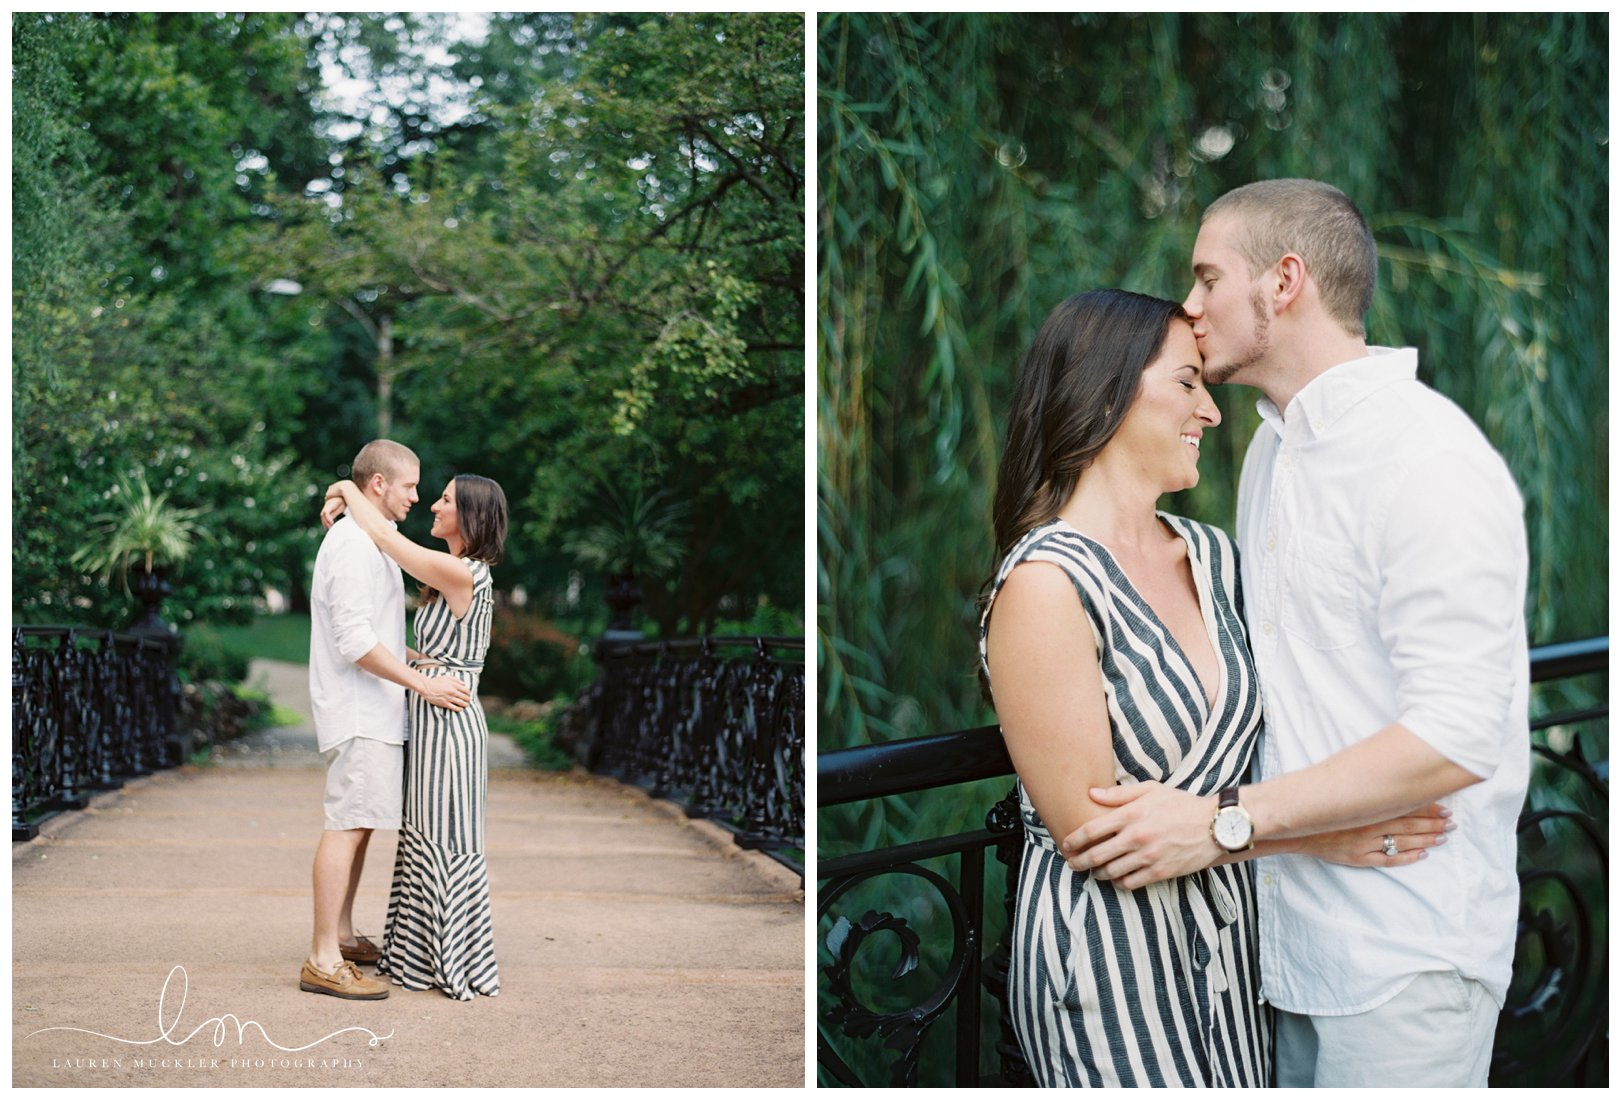 lauren muckler photography_fine art film wedding photography_st louis_photography_0707.jpg